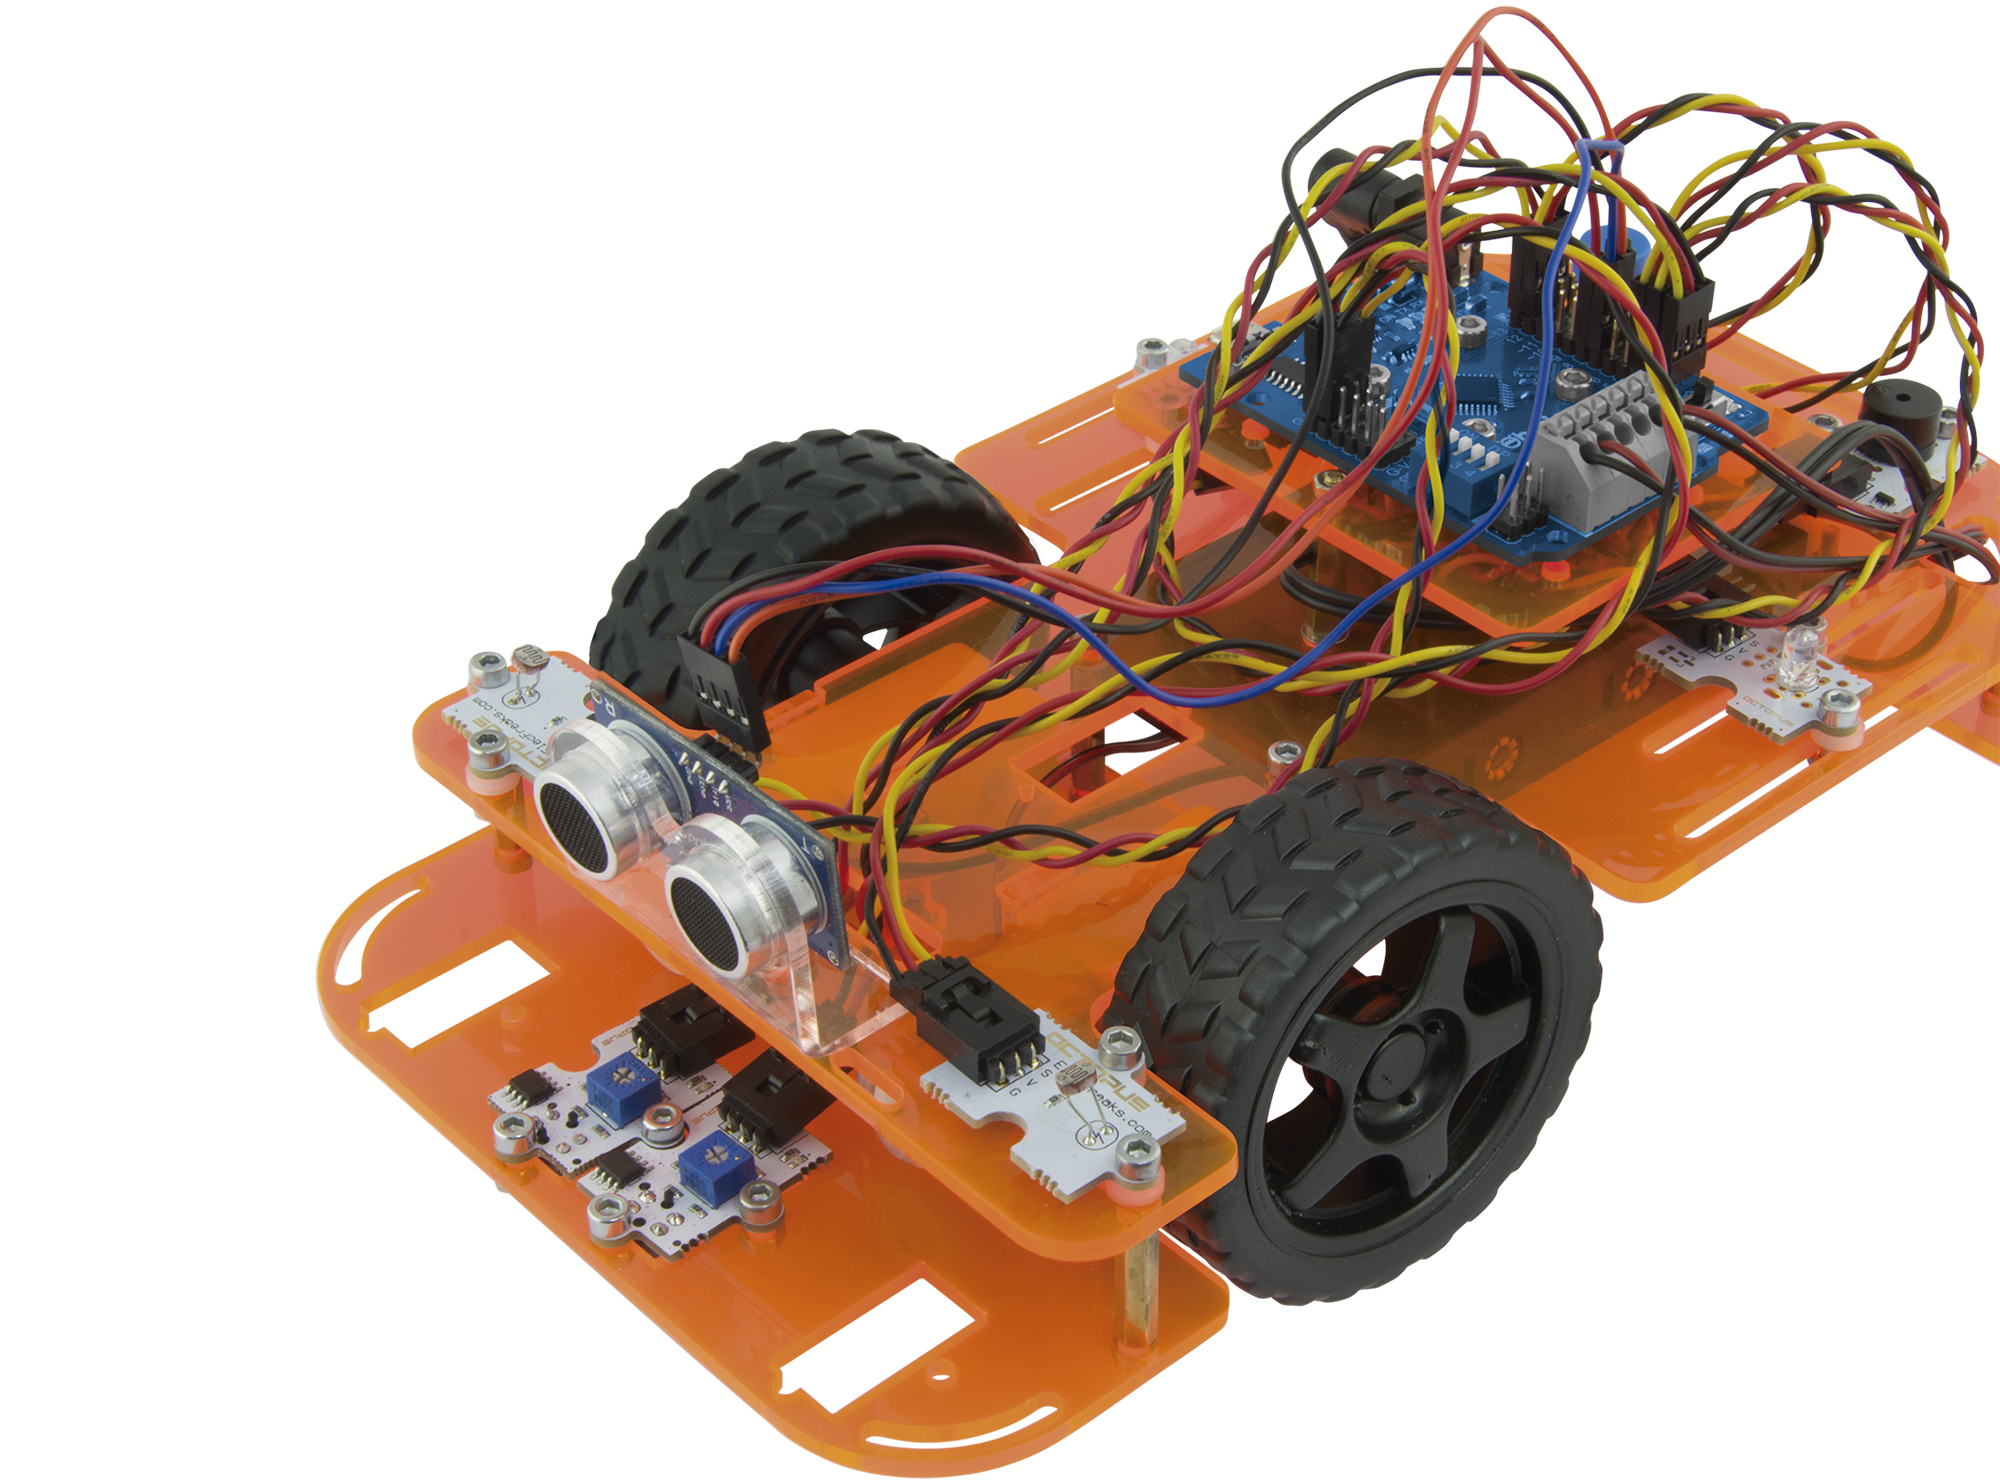 An automotive project for technology enthusiasts The Code & Drive…